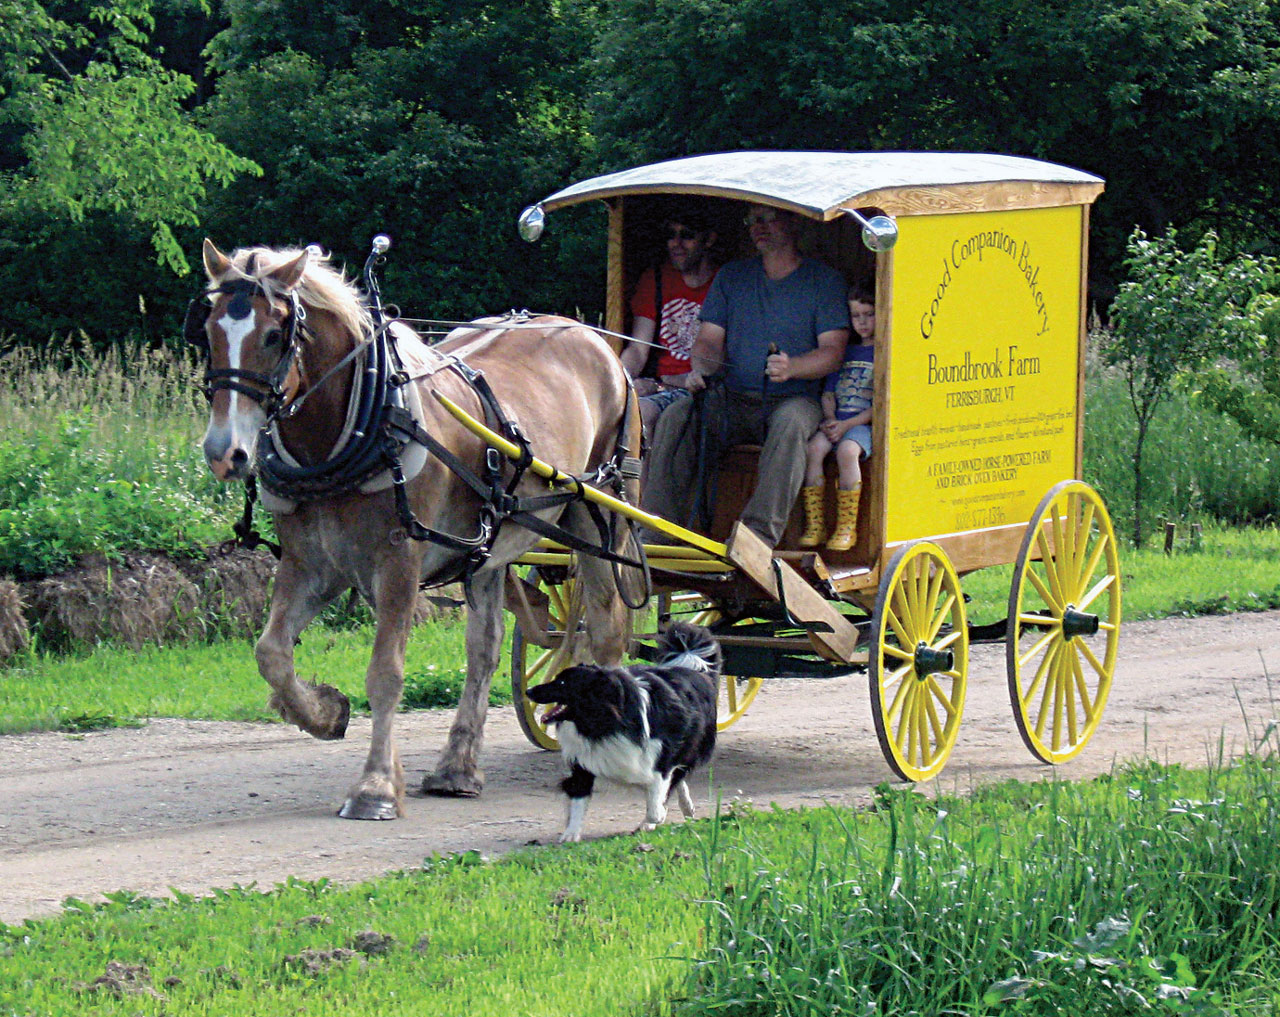 The Farm & Bakery Wagon